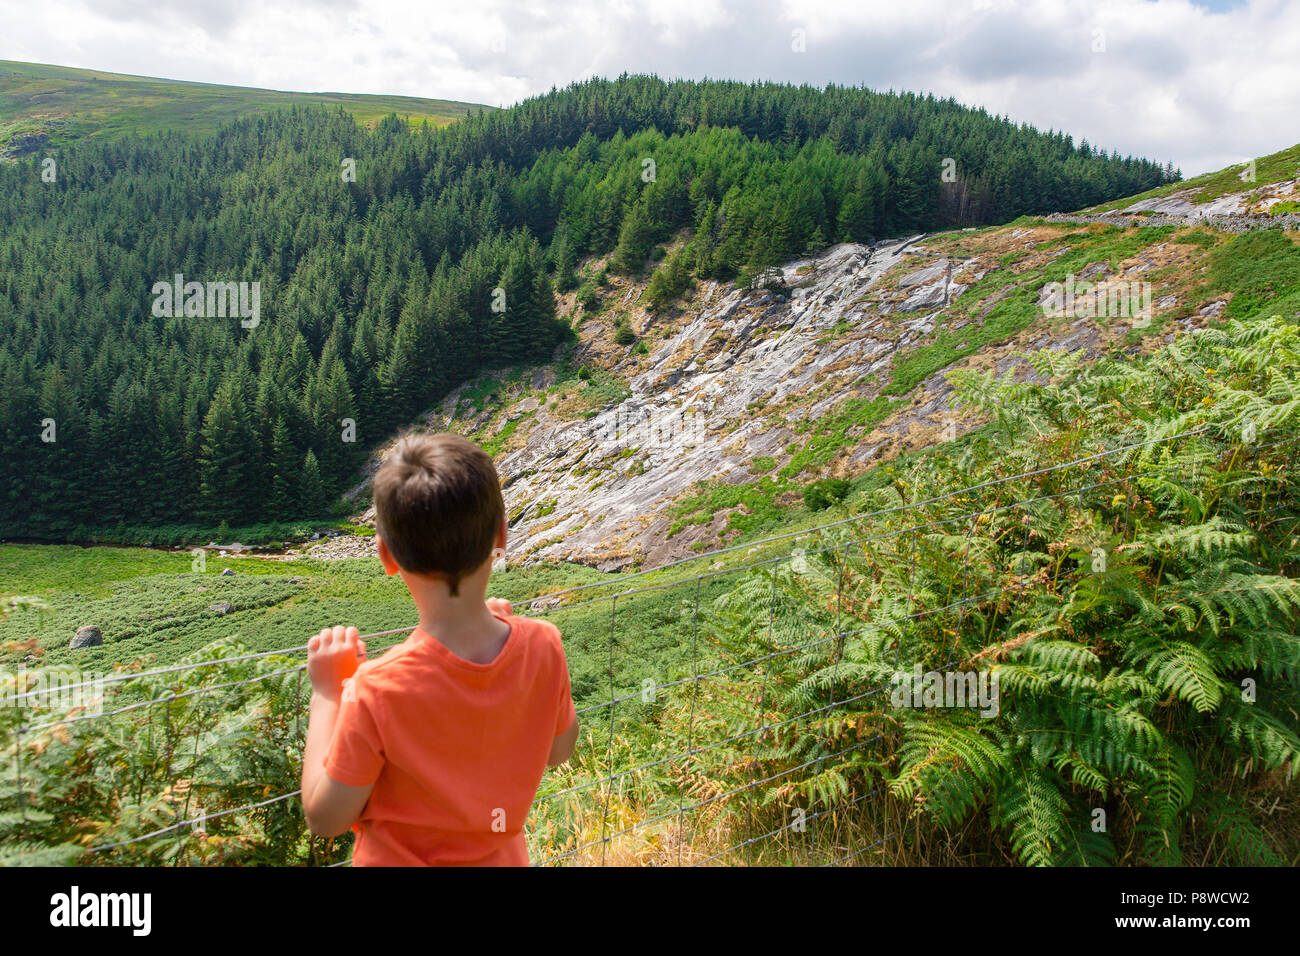 Boy looking at the Waterfall heatwave has caused it to nearly run dry in Glenmacnass valley, Wicklow mountains, Ireland.  Glenmacnass Waterfall. - Stock Image